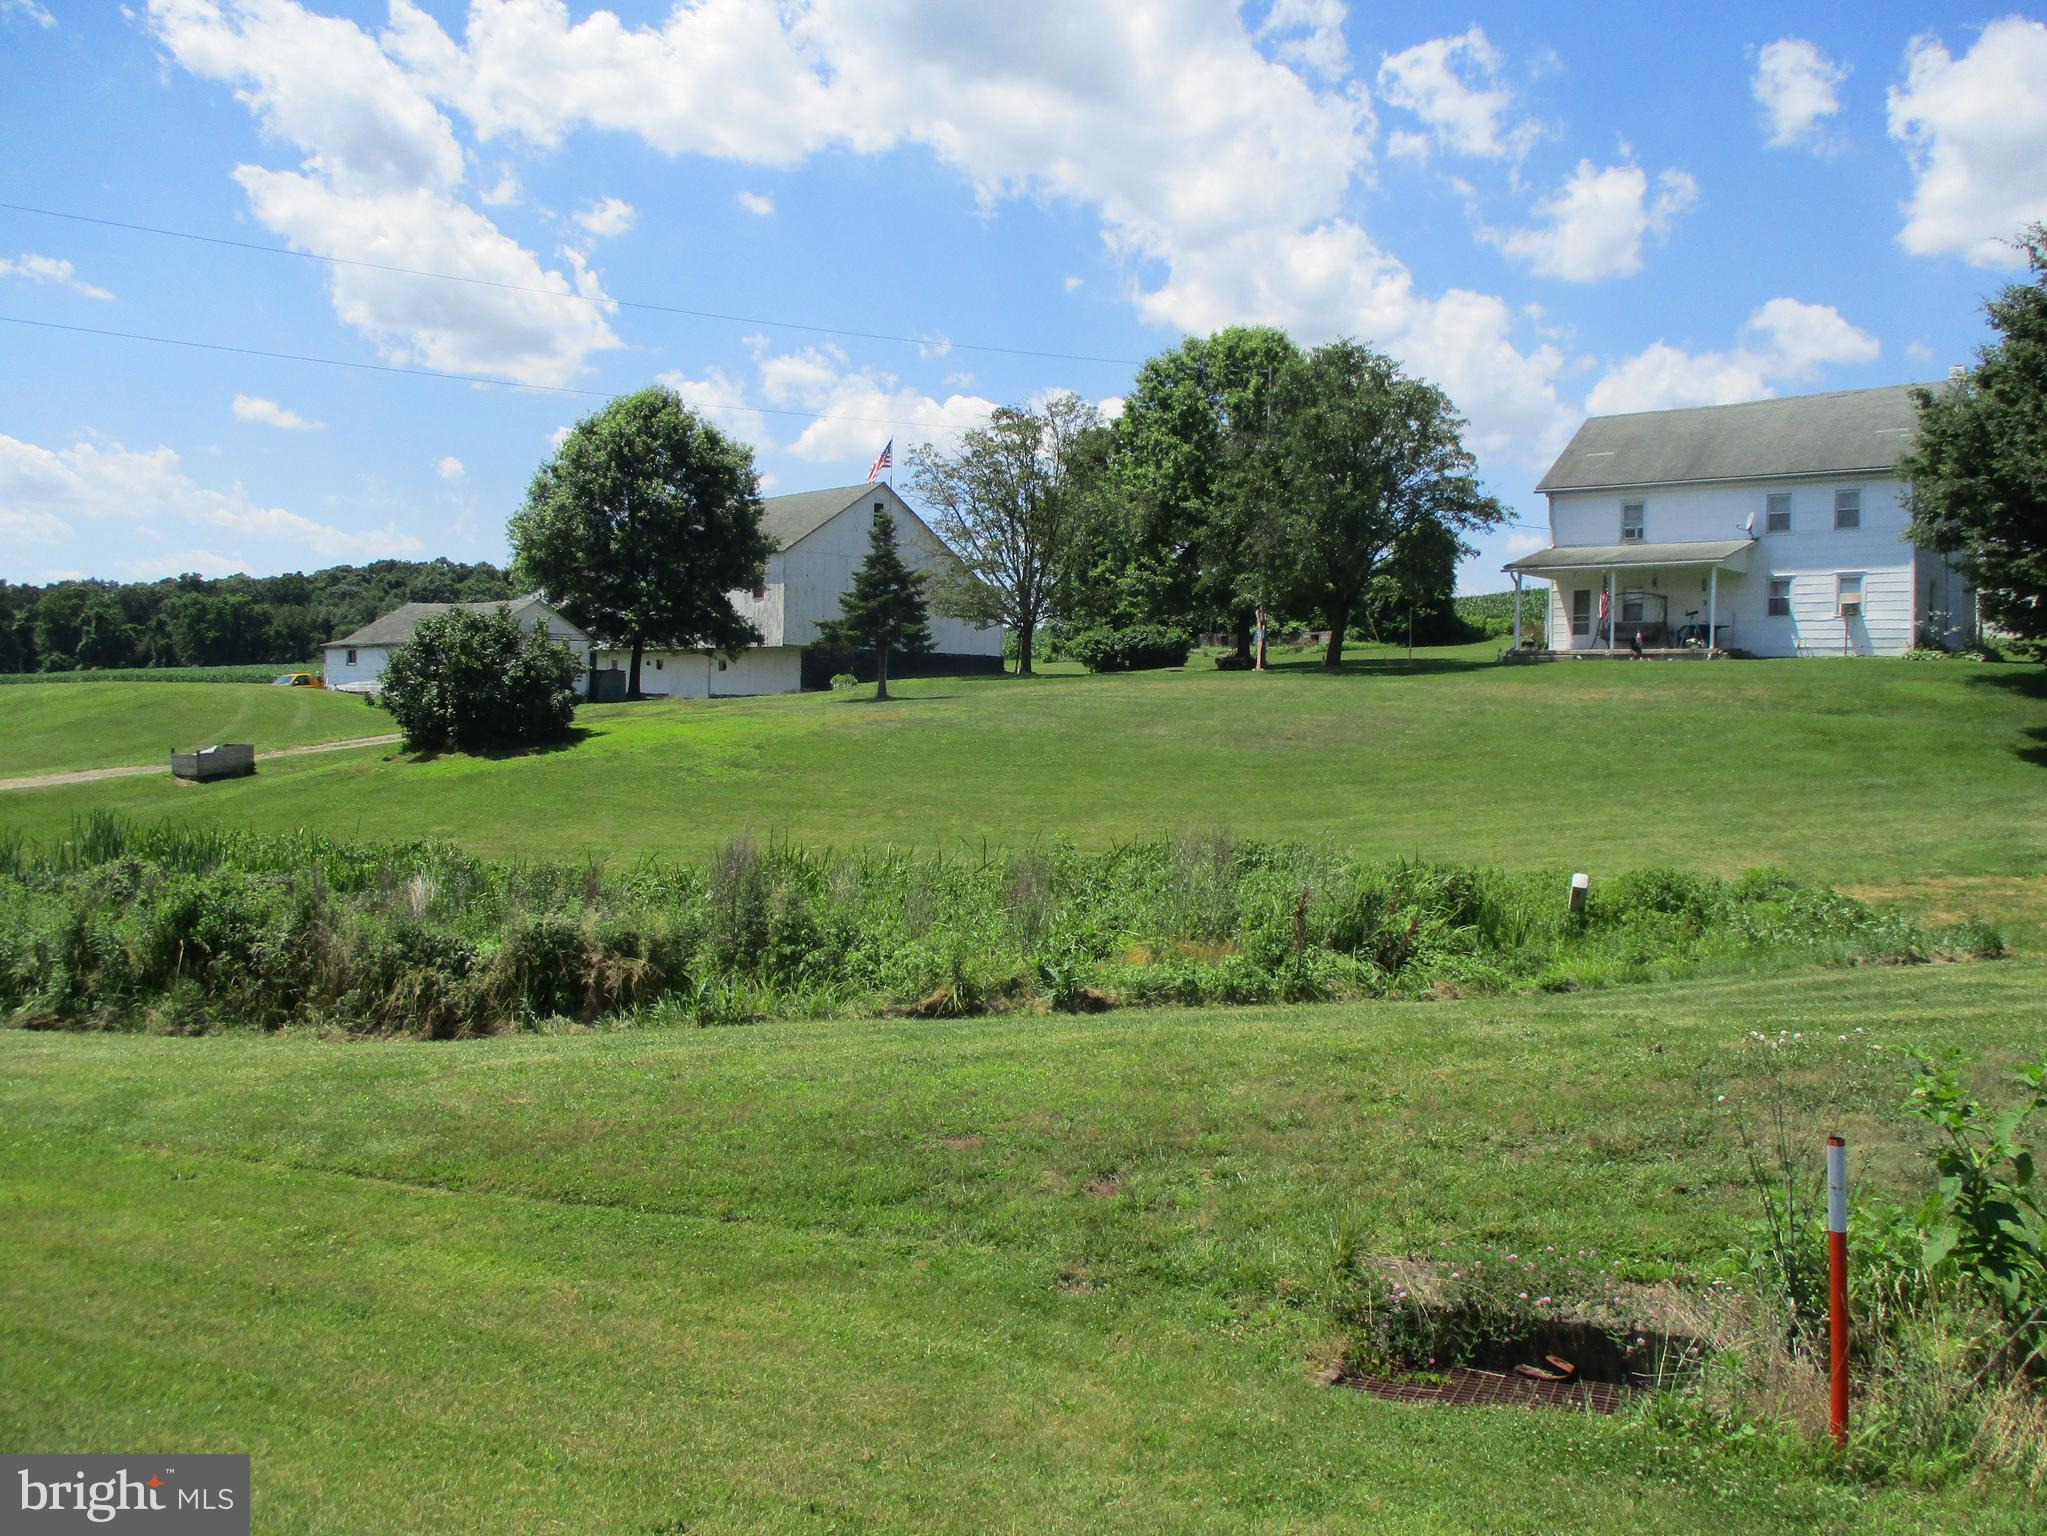 1012 ARMSTRONG VALLEY ROAD, HALIFAX, PA 17032